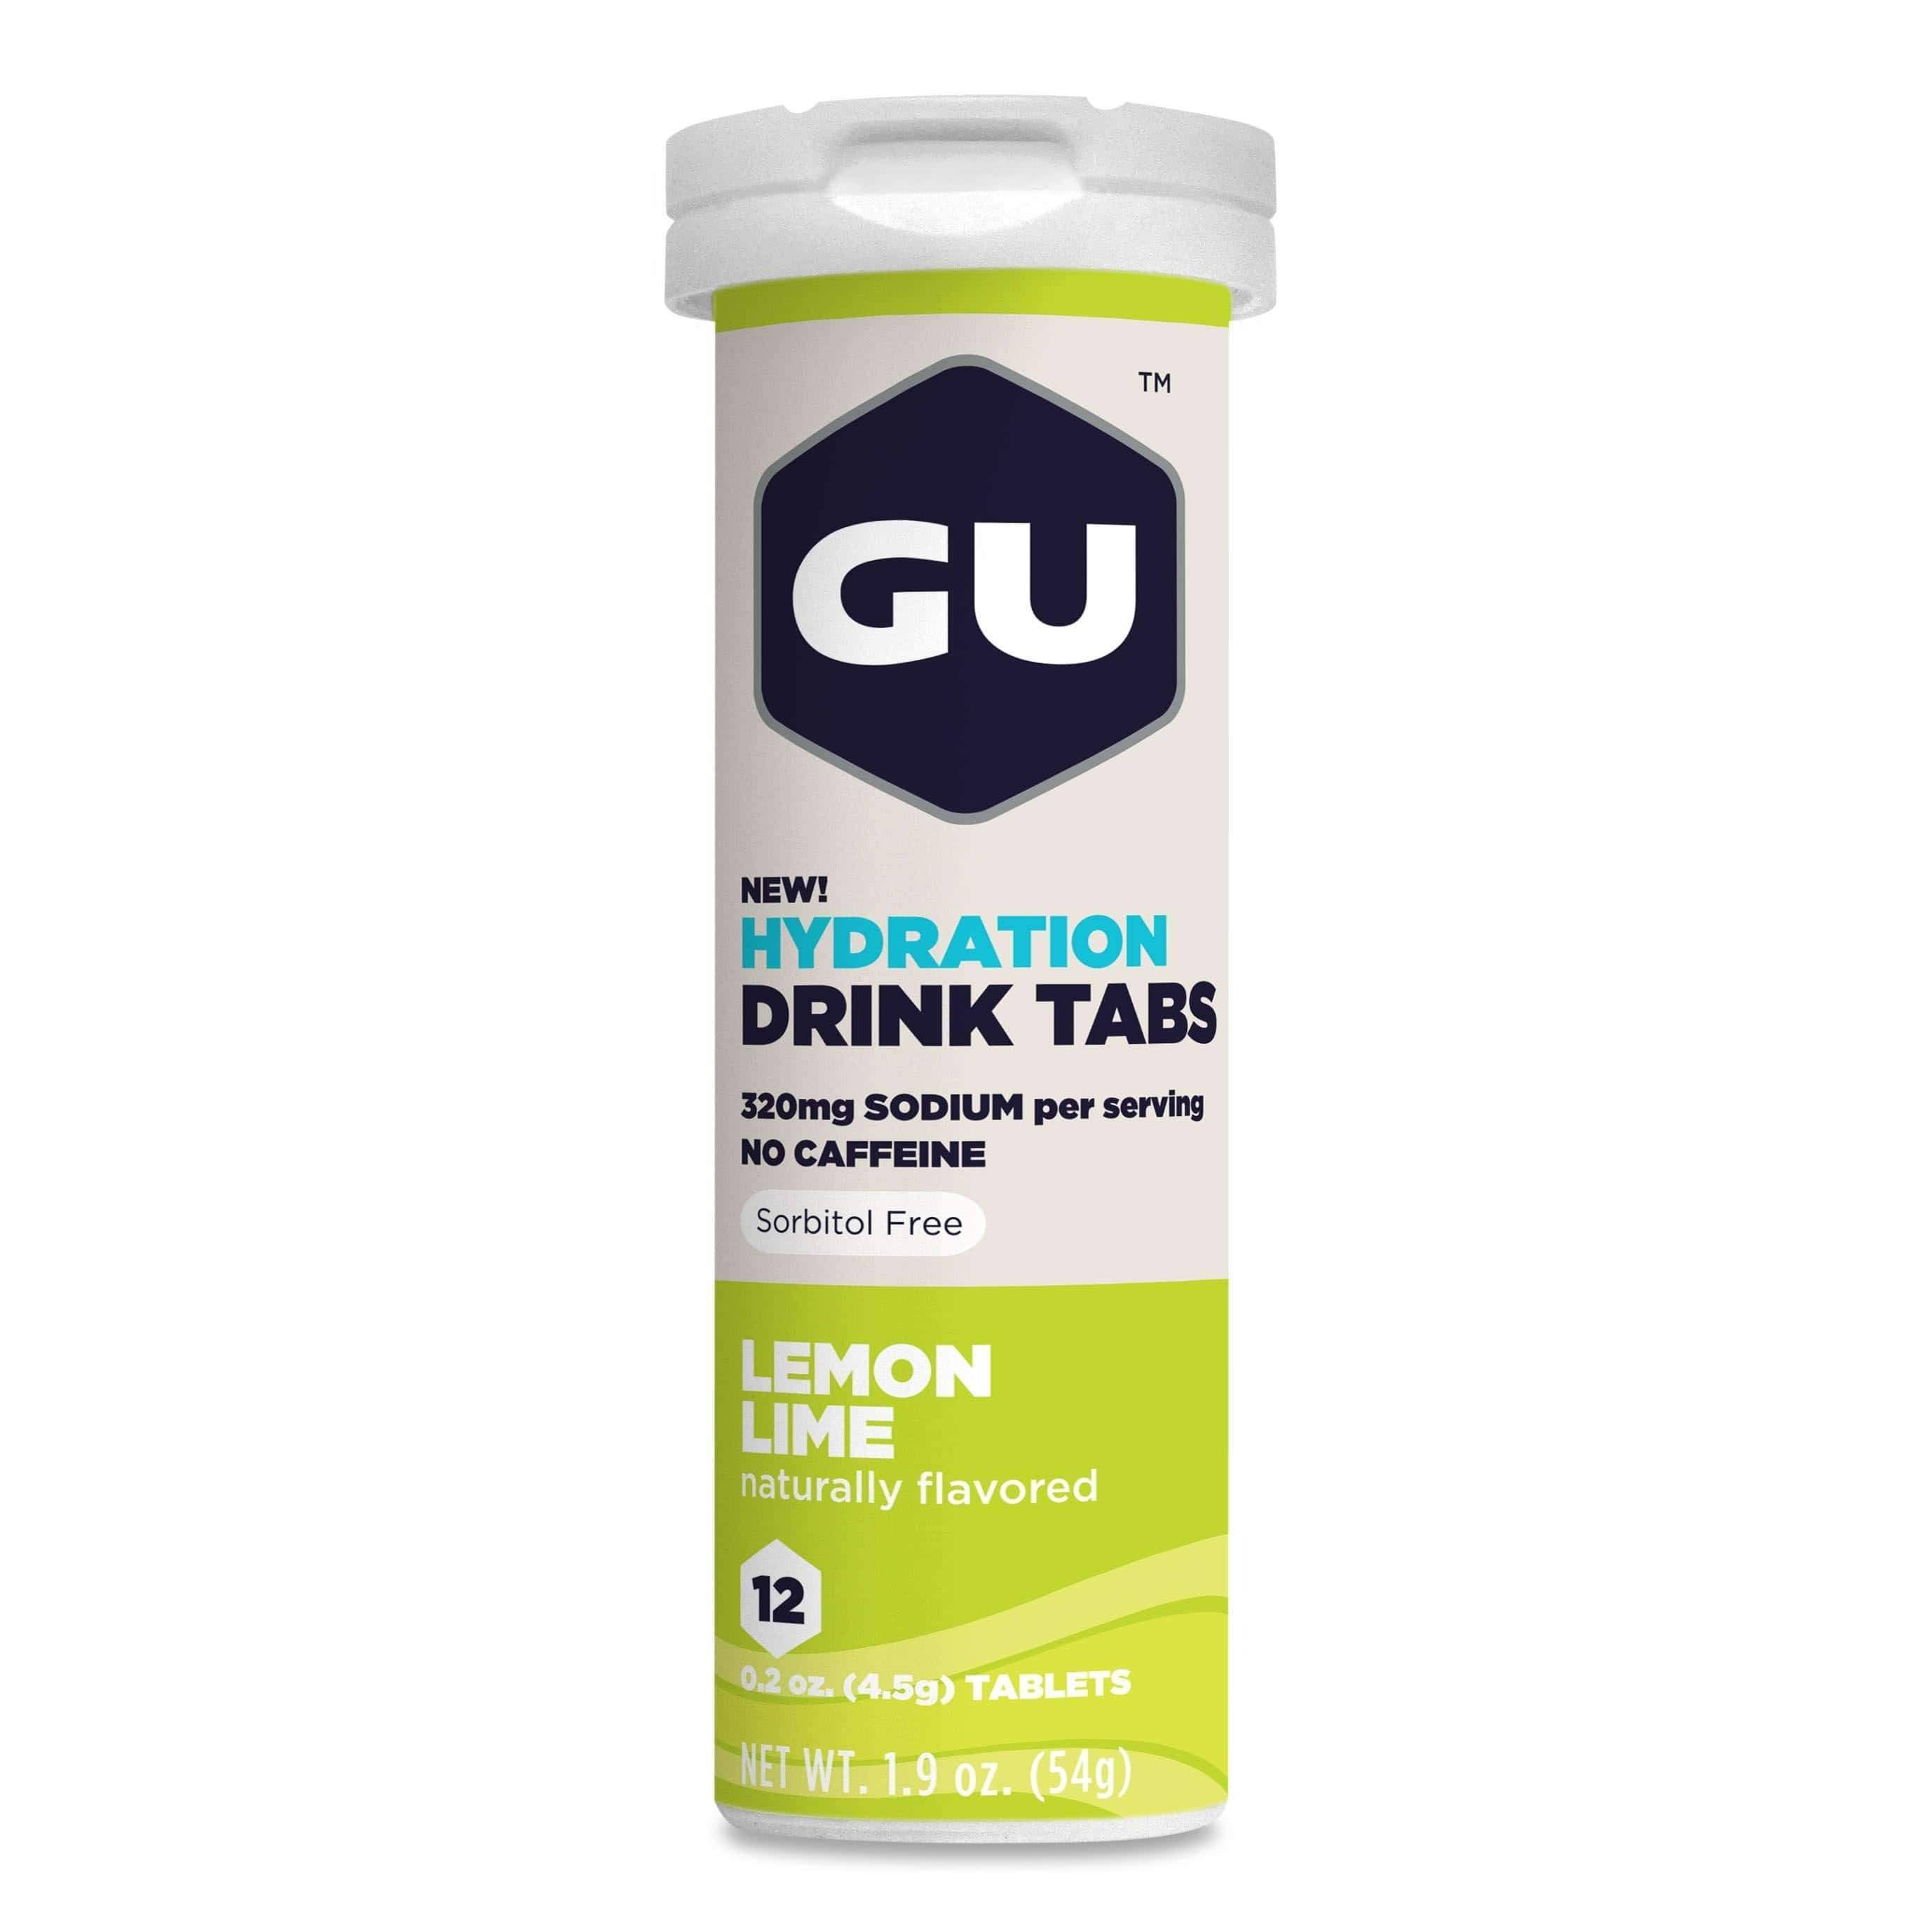 GU Energy Hydration Drink Tabs - Lemon Lime, 12 Pack